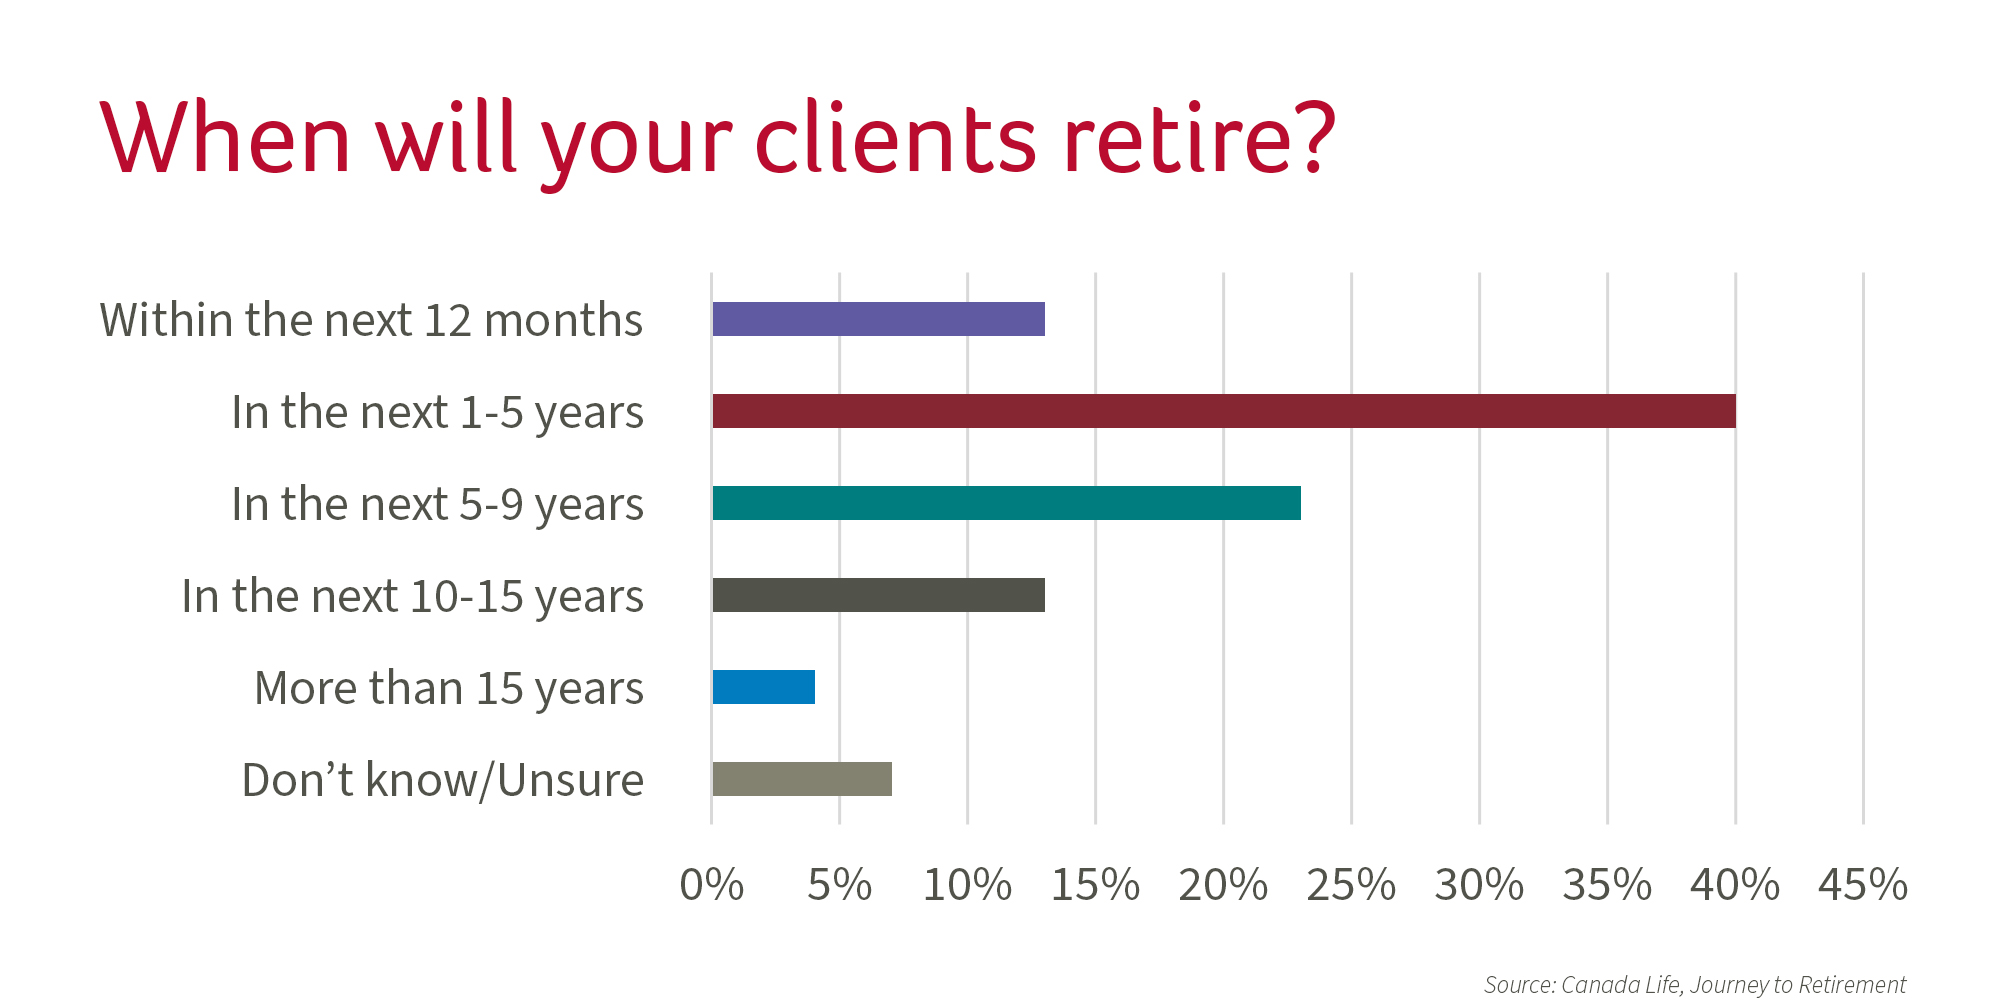 Graphic : When will your clients retire?